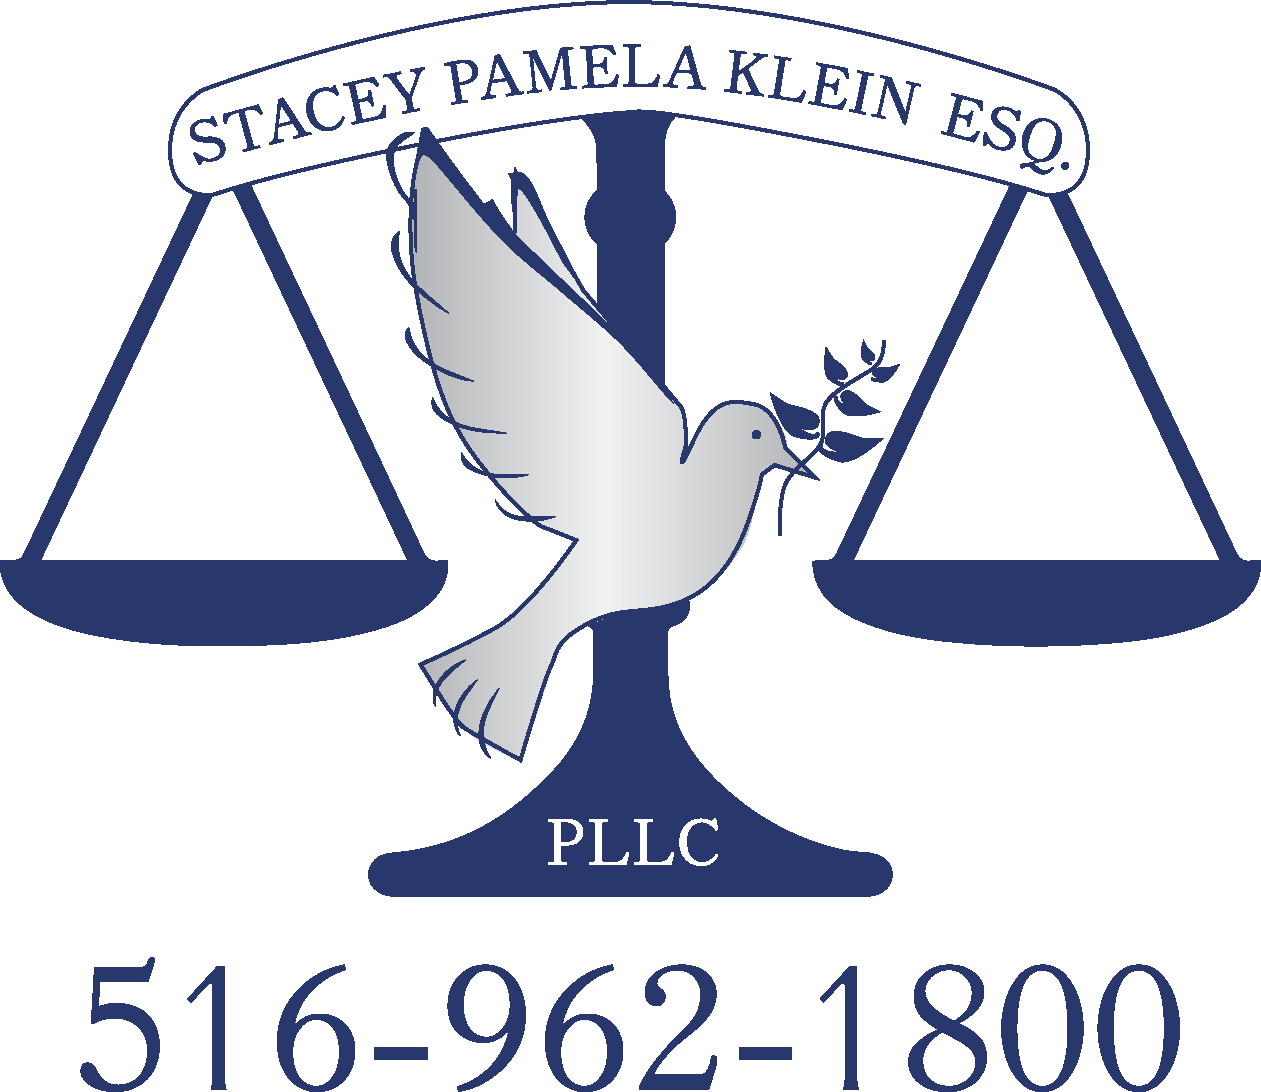 Stacey Pamela Klein Esq. PLLC logo - a blue scale of justice with a grey dove in front of it, holding a blue olive branch. Company name and phone number are included.